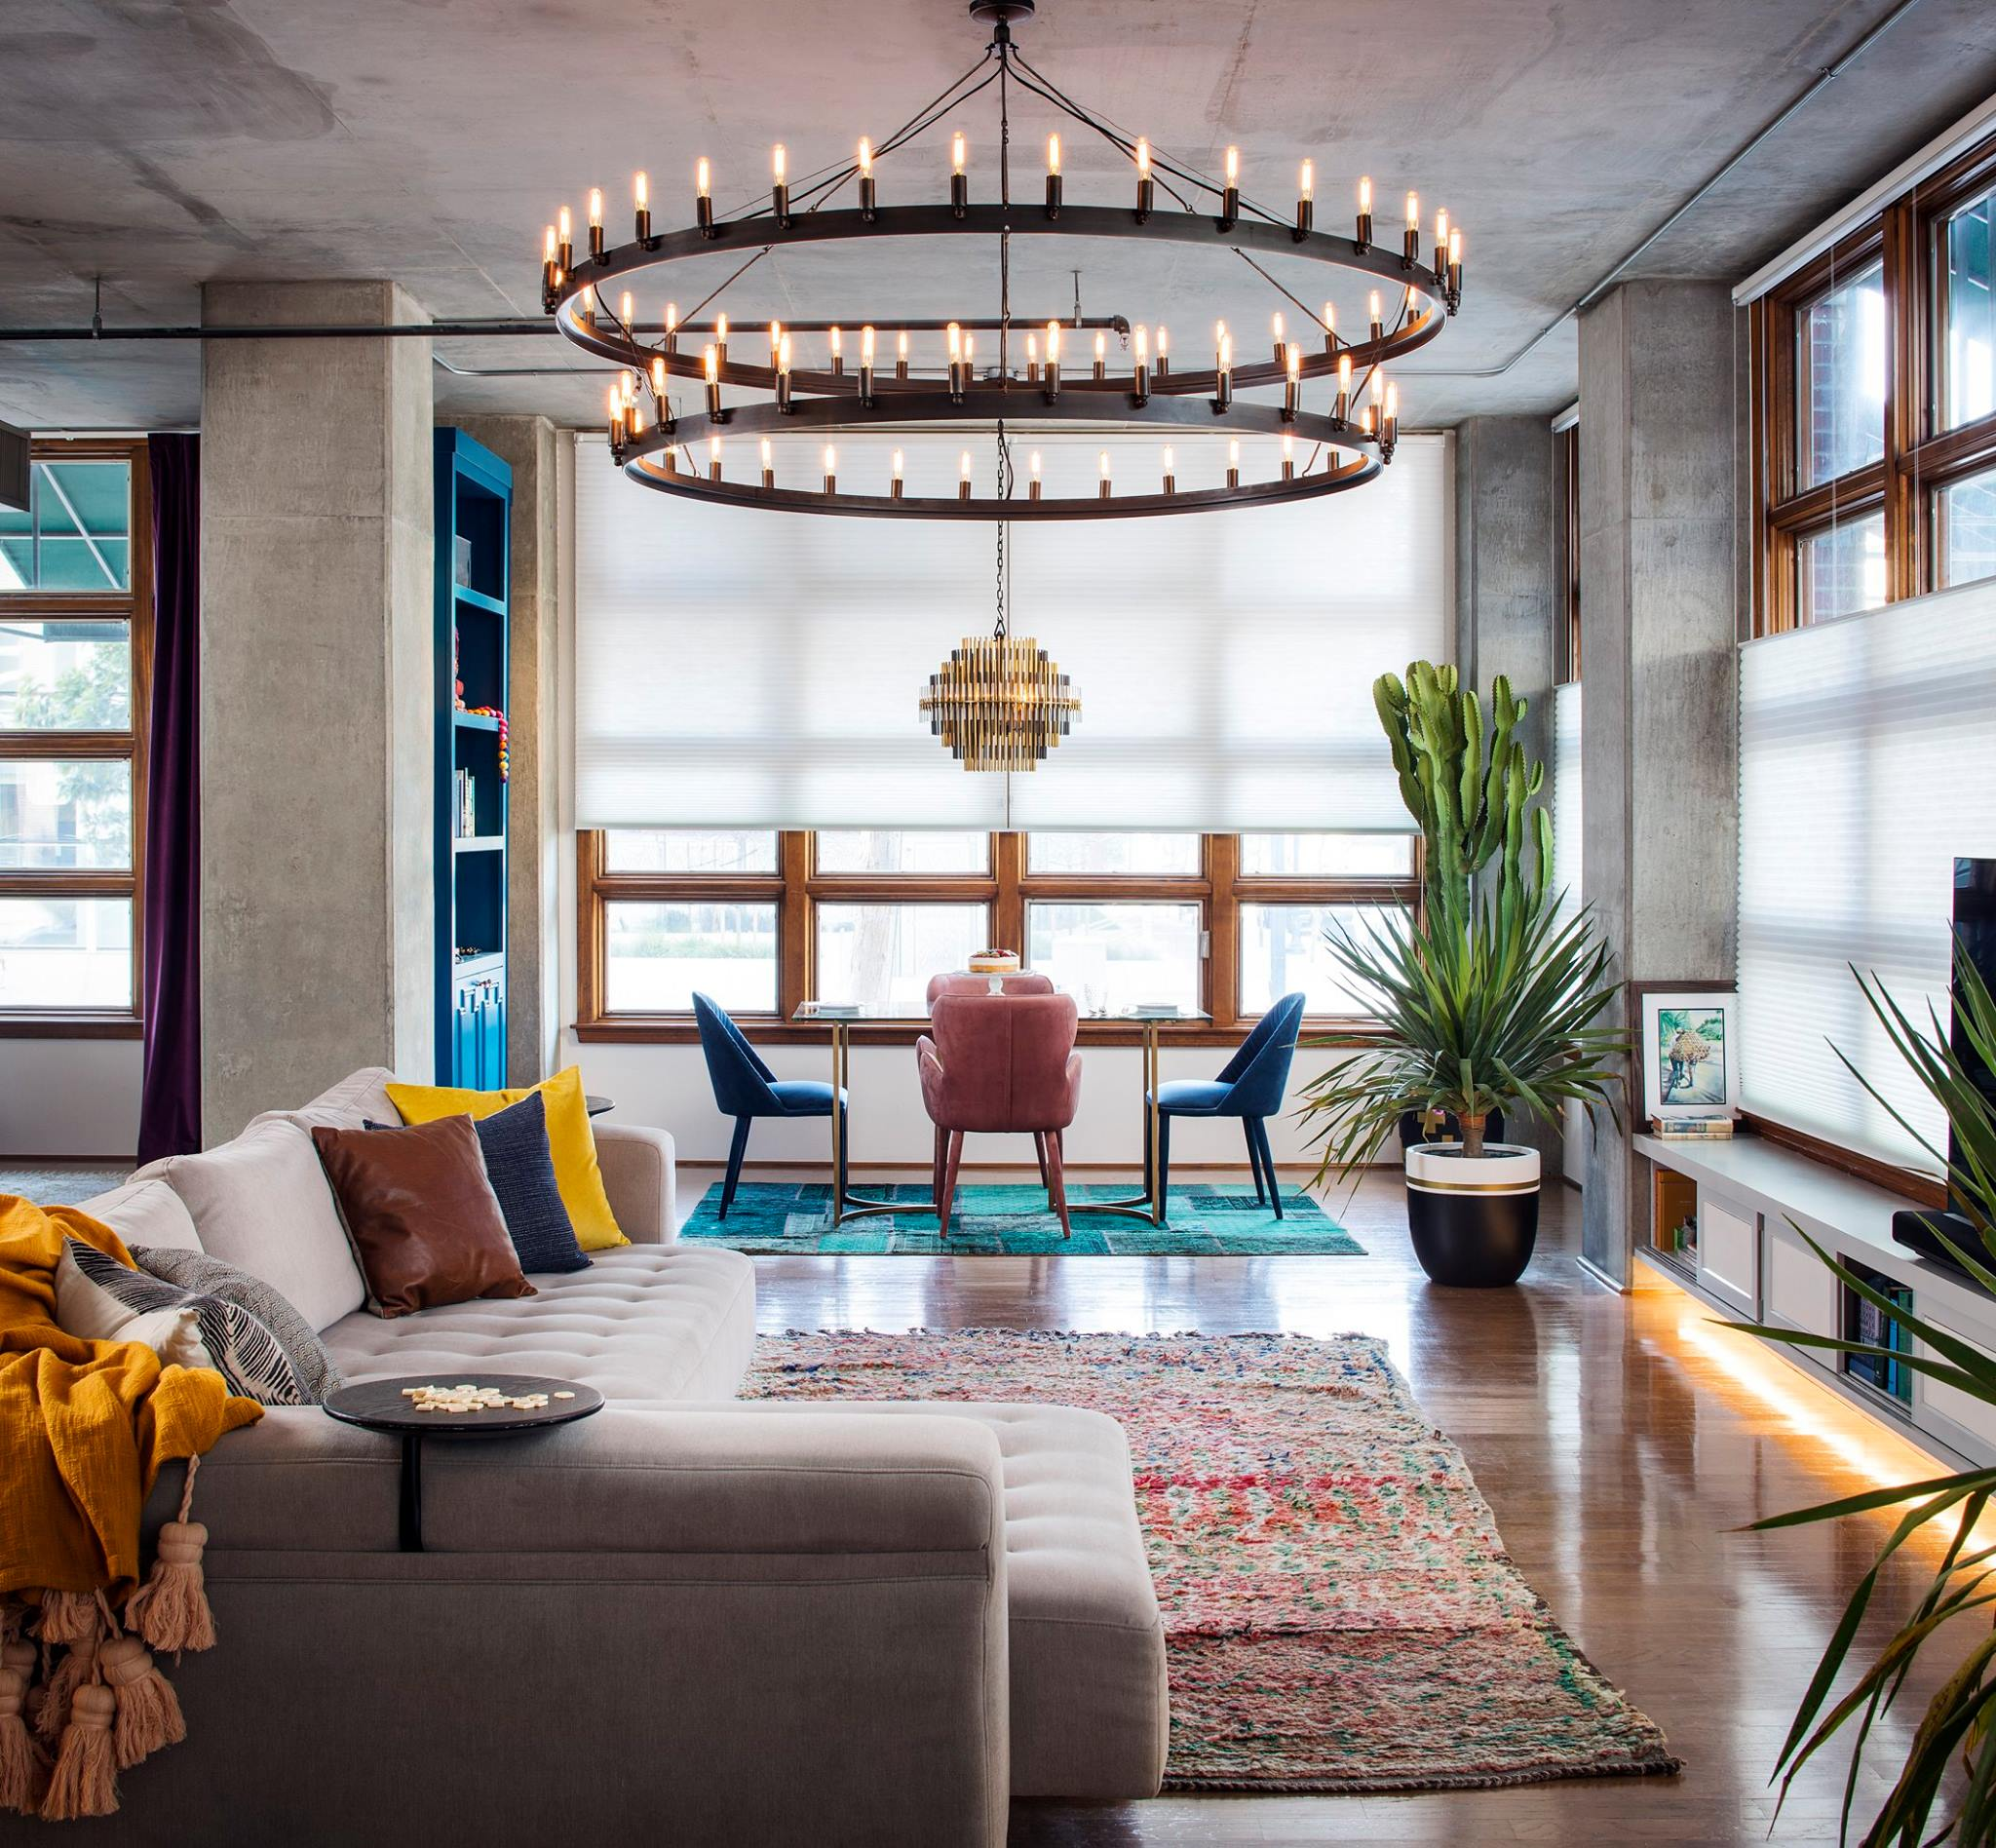 7 Hot 2018 Interior Design Trends To Watch